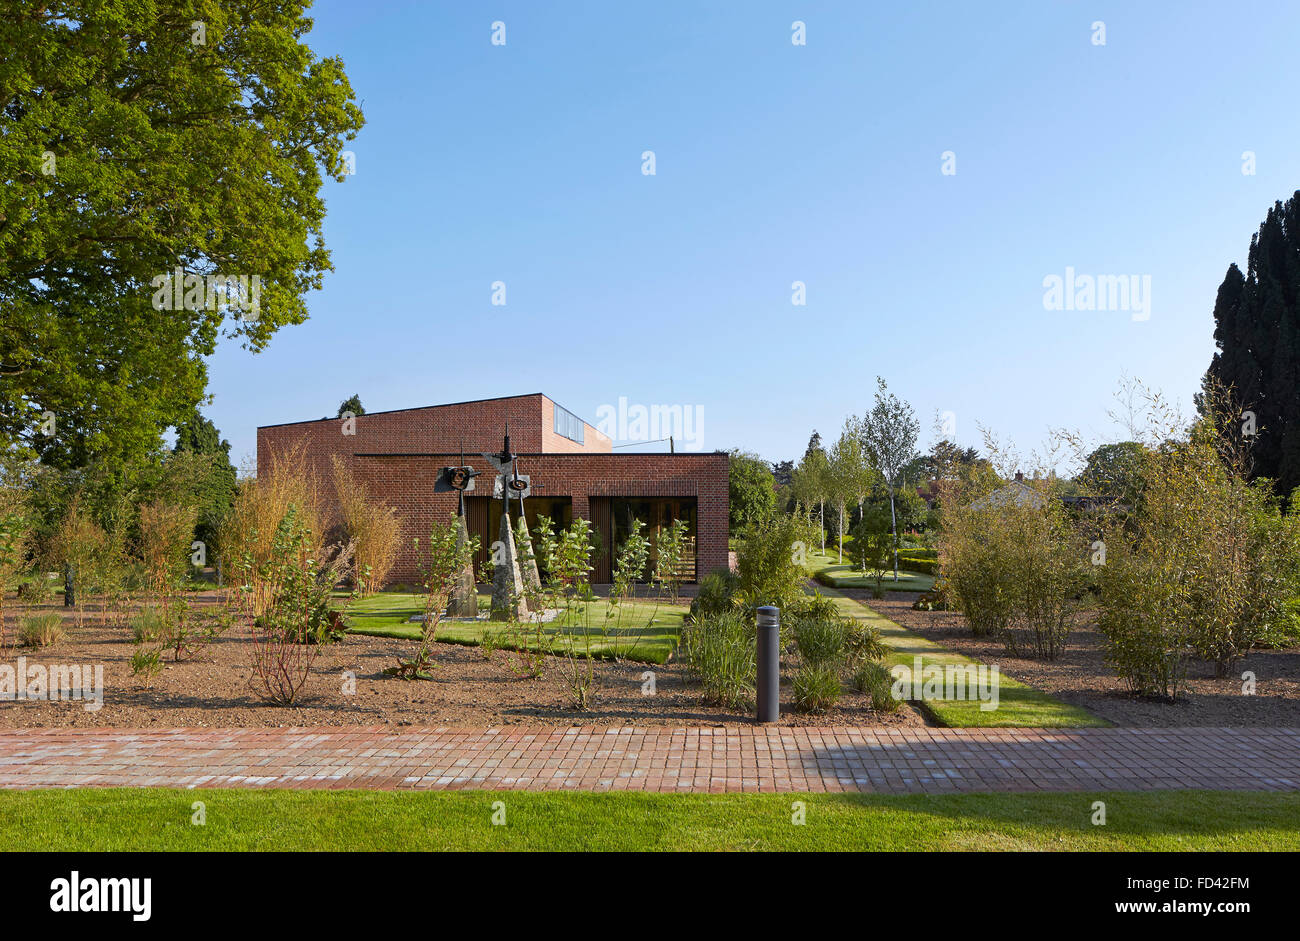 Distant elevation with garden. Britten-Pears Archive, Aldeburgh, United Kingdom. Architect: Stanton Williams, 2013. - Stock Image